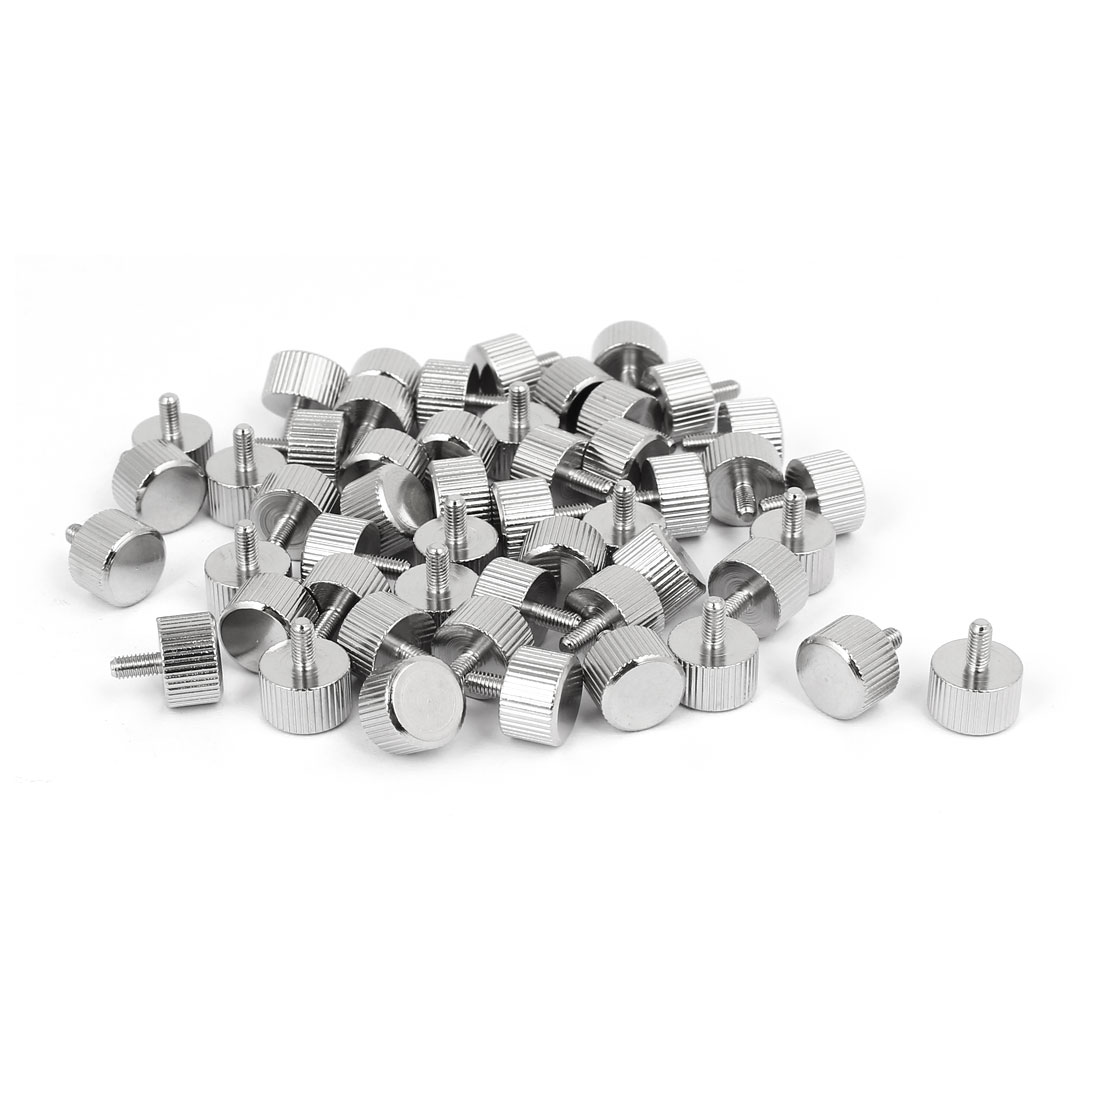 M3 x 6mm Nickel Plated Flat Head Knurled Thumb Screw 50pcs for Computer PC Case